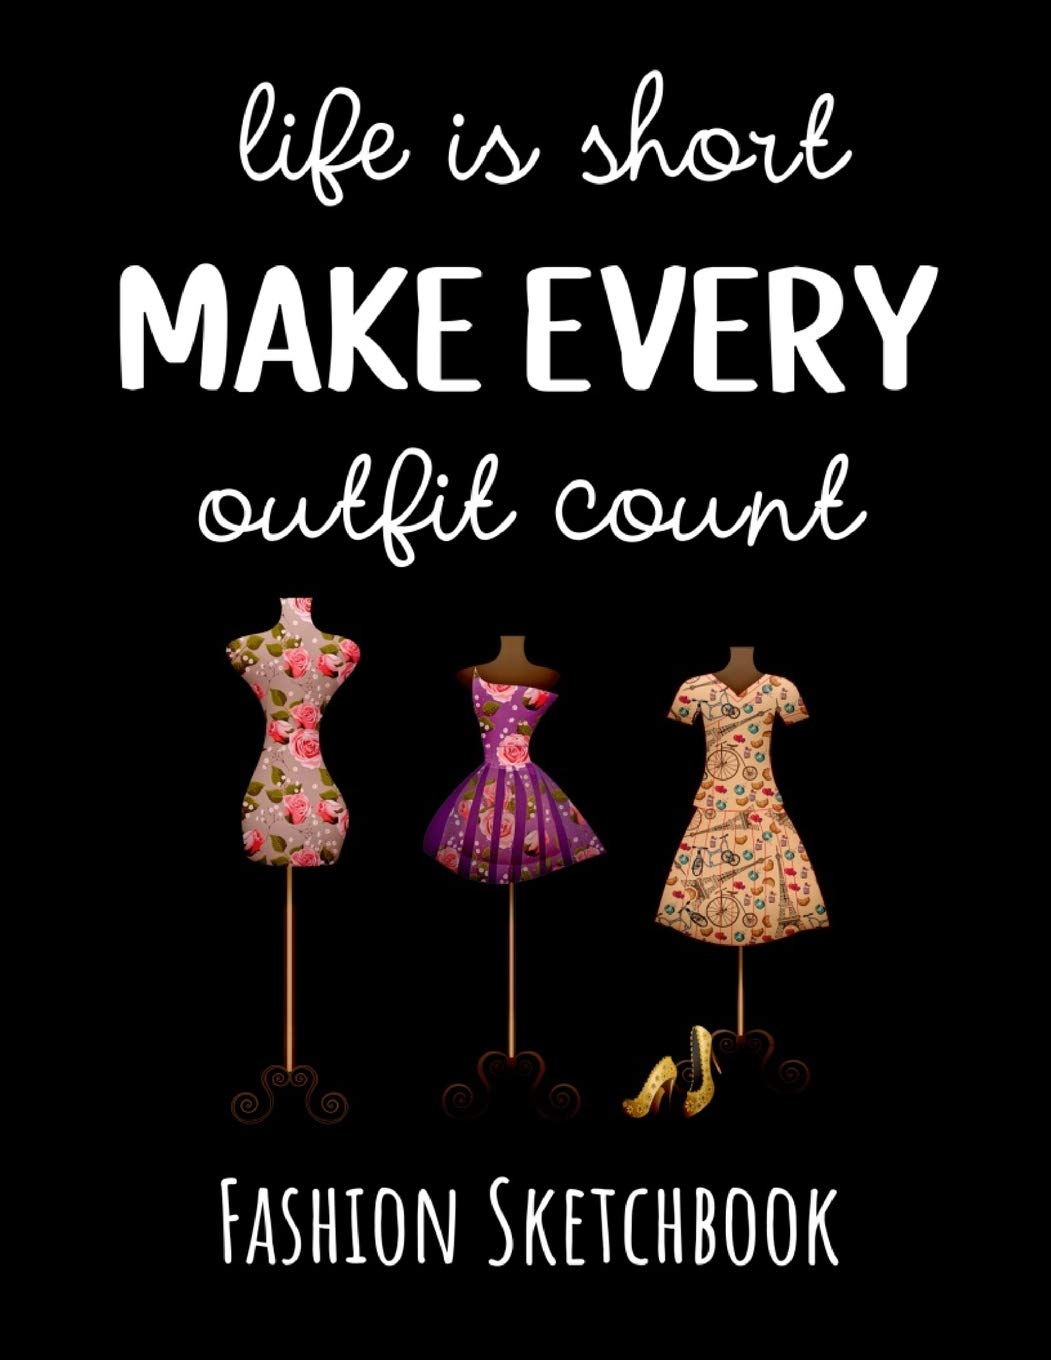 Amazon Com Life Is Short Make Every Outfit Count Fashion Sketchbook Figure Template Fashion Design Drawing Gifts For Girls Women 9781711236681 Press Pink Panda Books